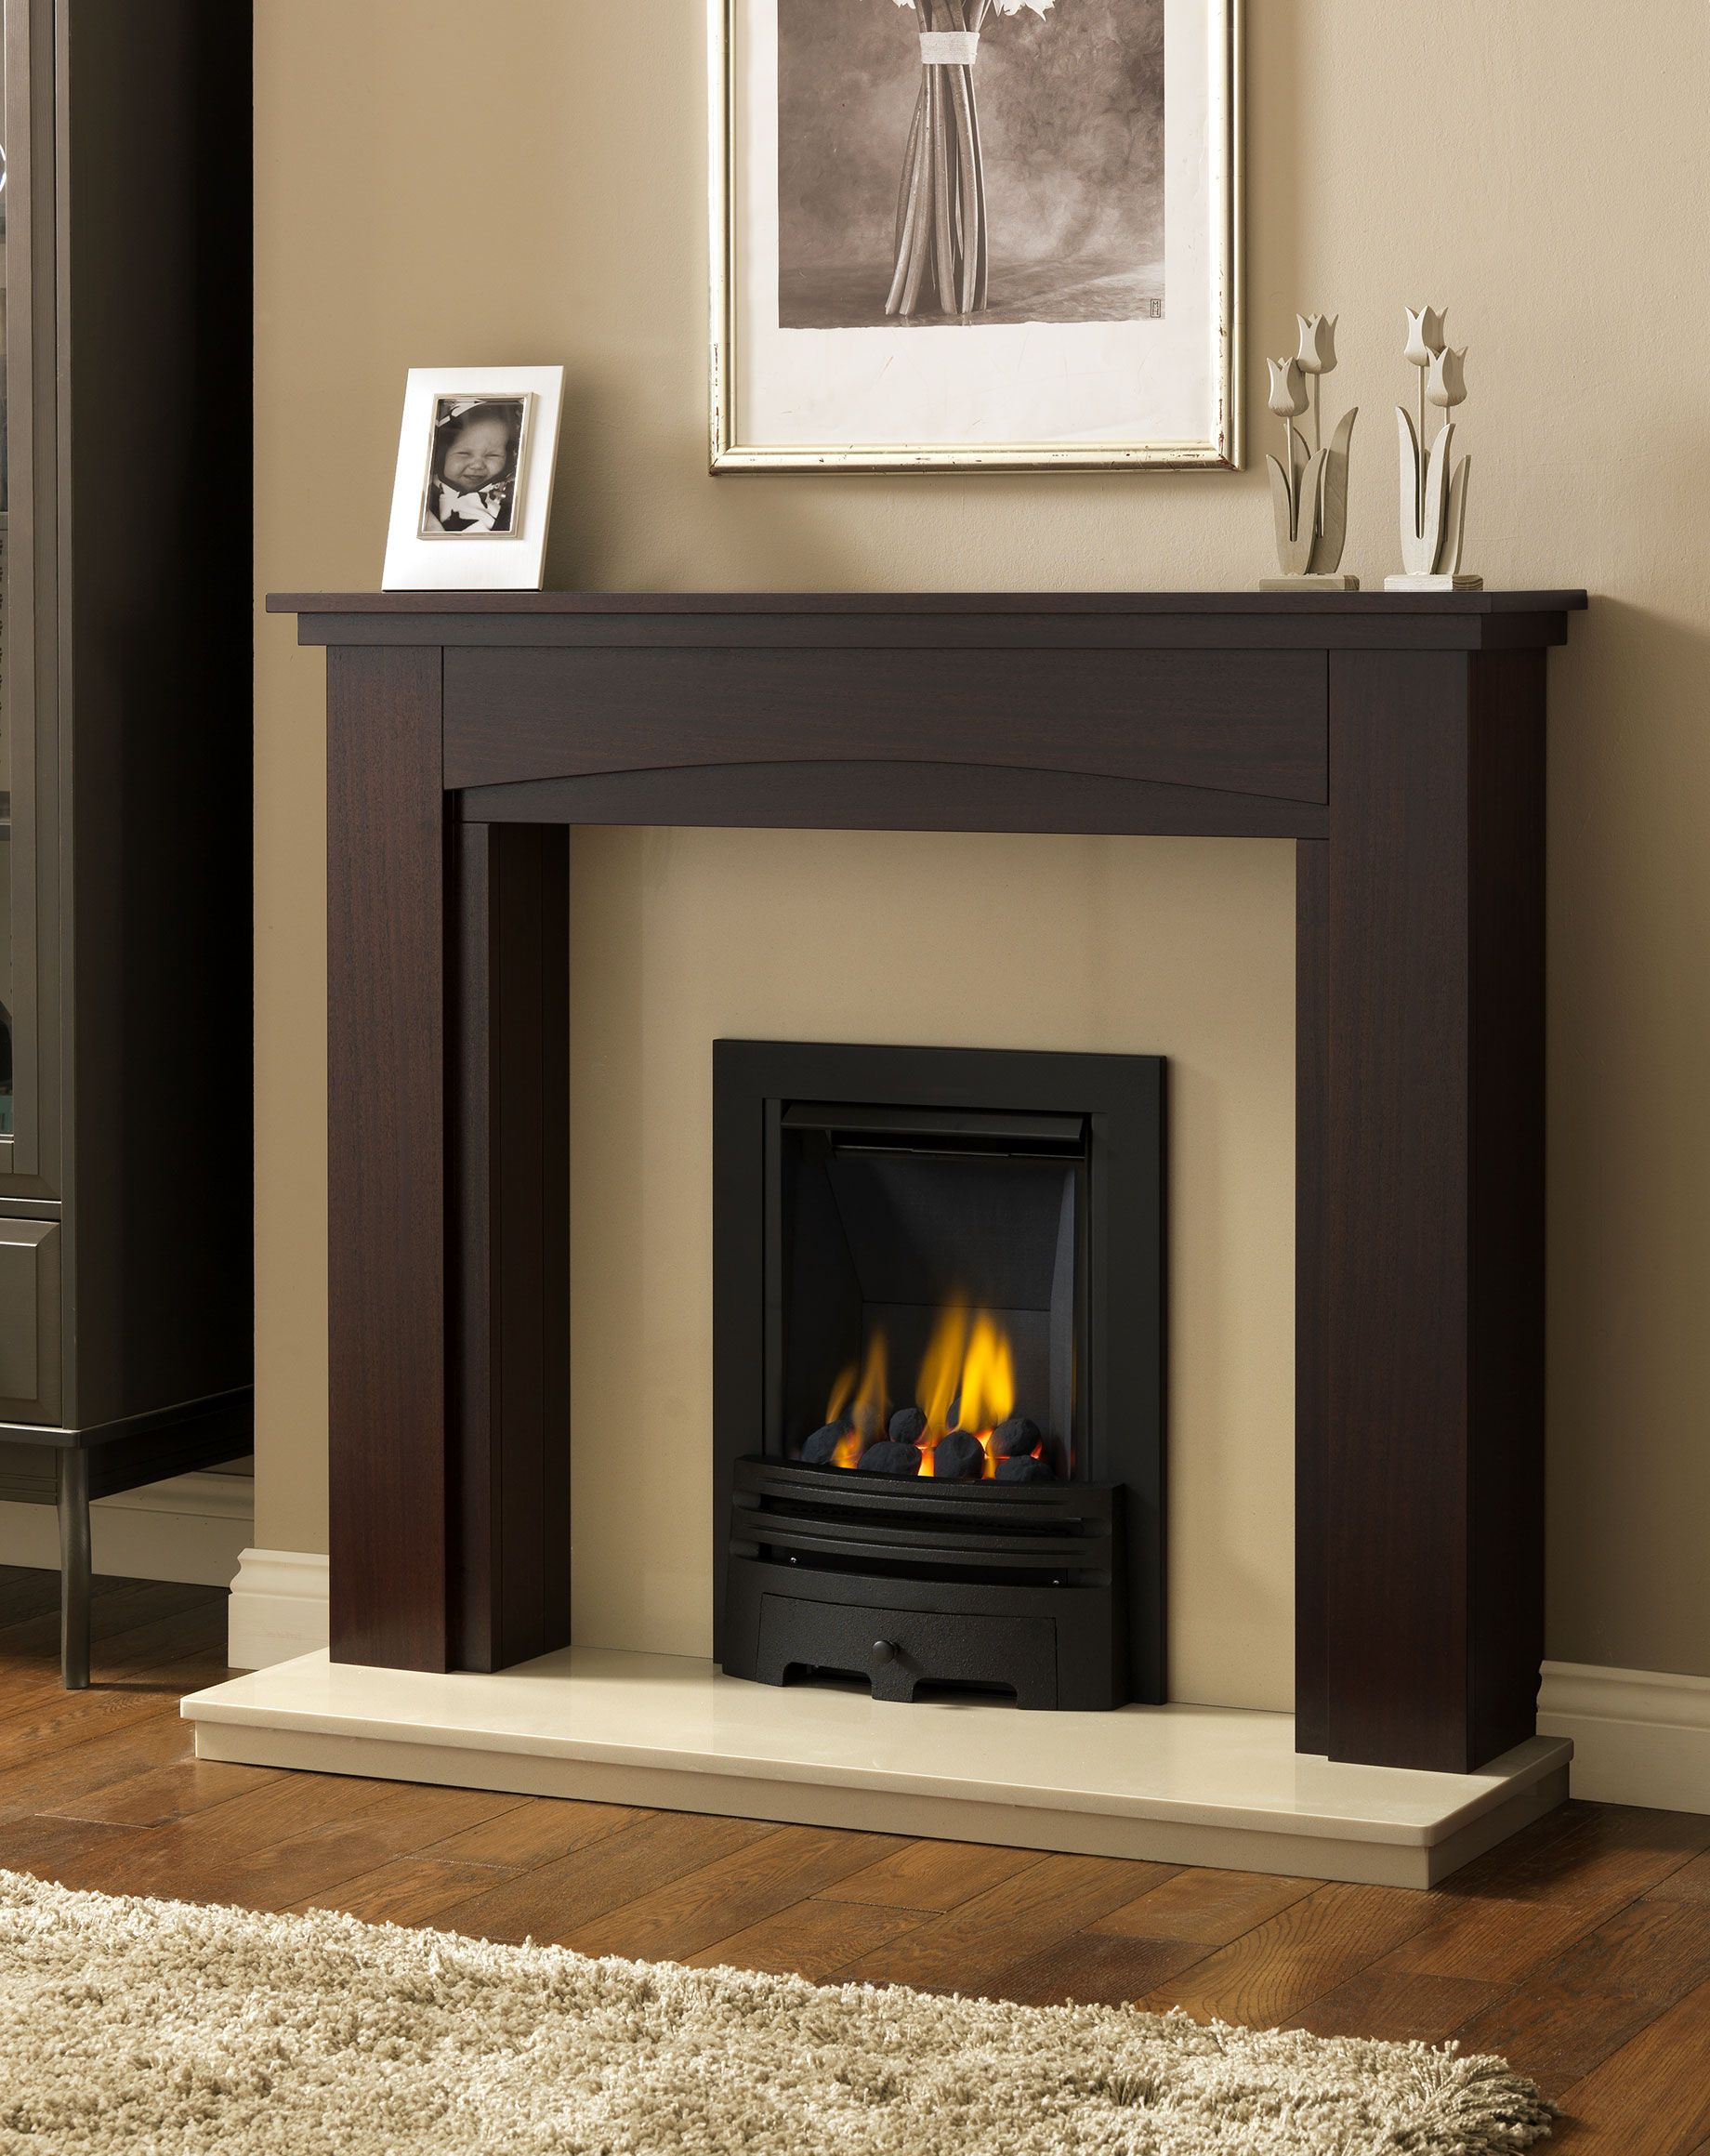 Beautify Your Living Room With Modern Fireplace Surrounds Ideas Modern Fireplace Surrounds Ide Home Fireplace Fireplace Mantel Designs White Fireplace Mantels